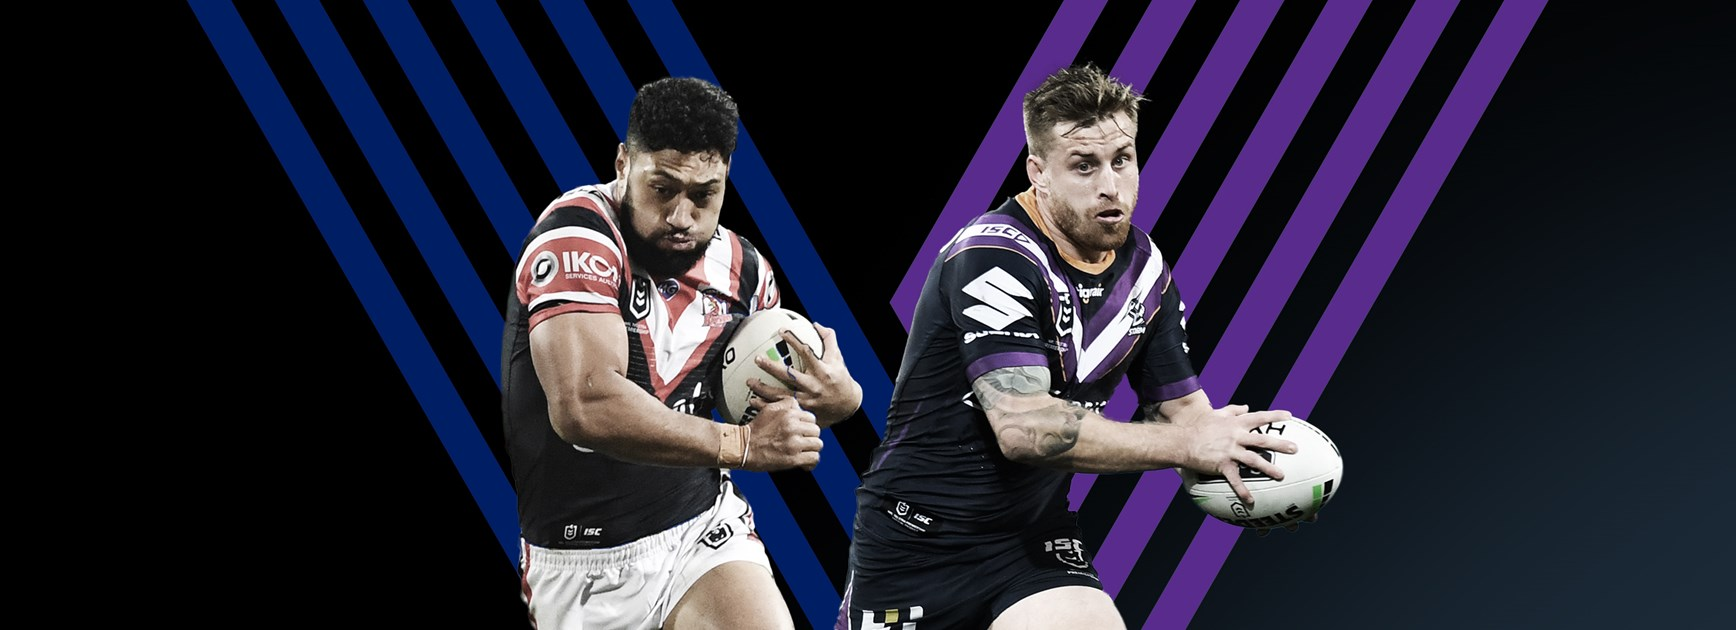 Roosters v Storm: Friend ruled out; Chambers gets reprieve